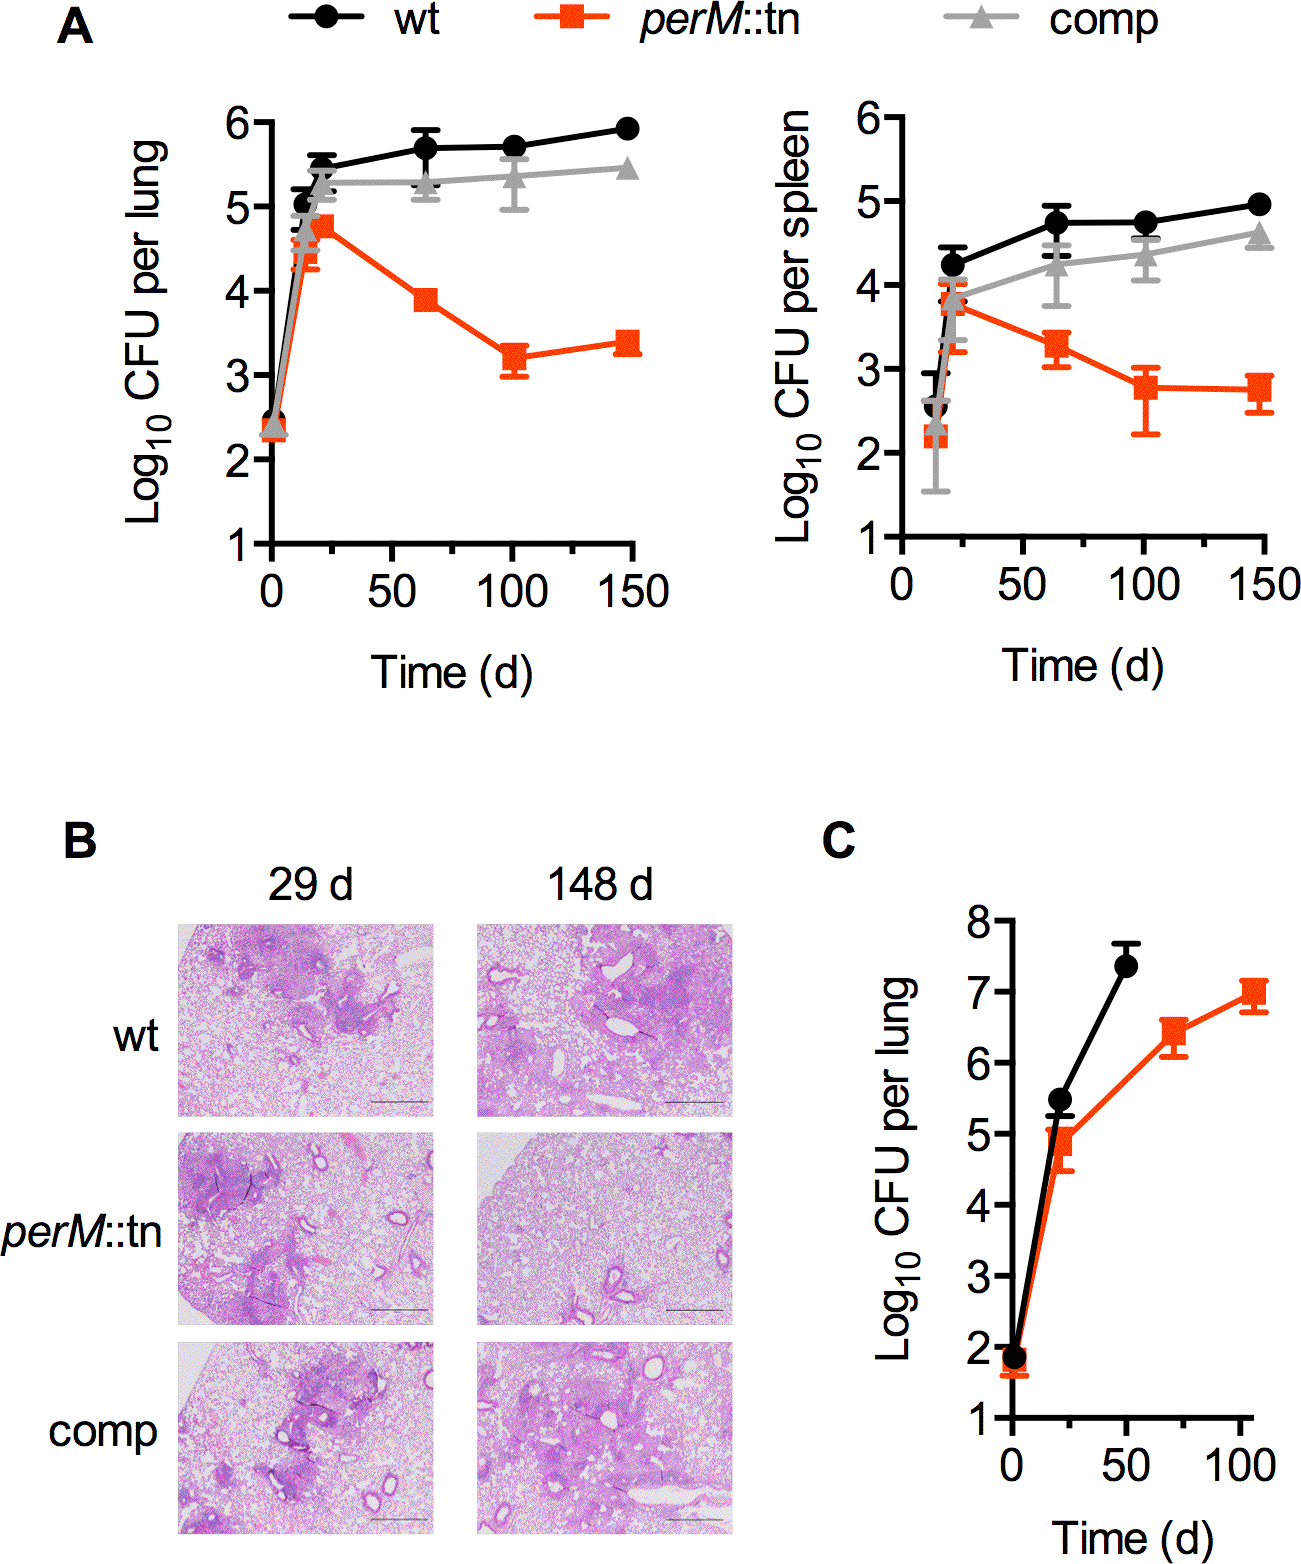 PerM is necessary for Mtb persistence <i>in vivo</i> in an IFN-γ-dependent manner.